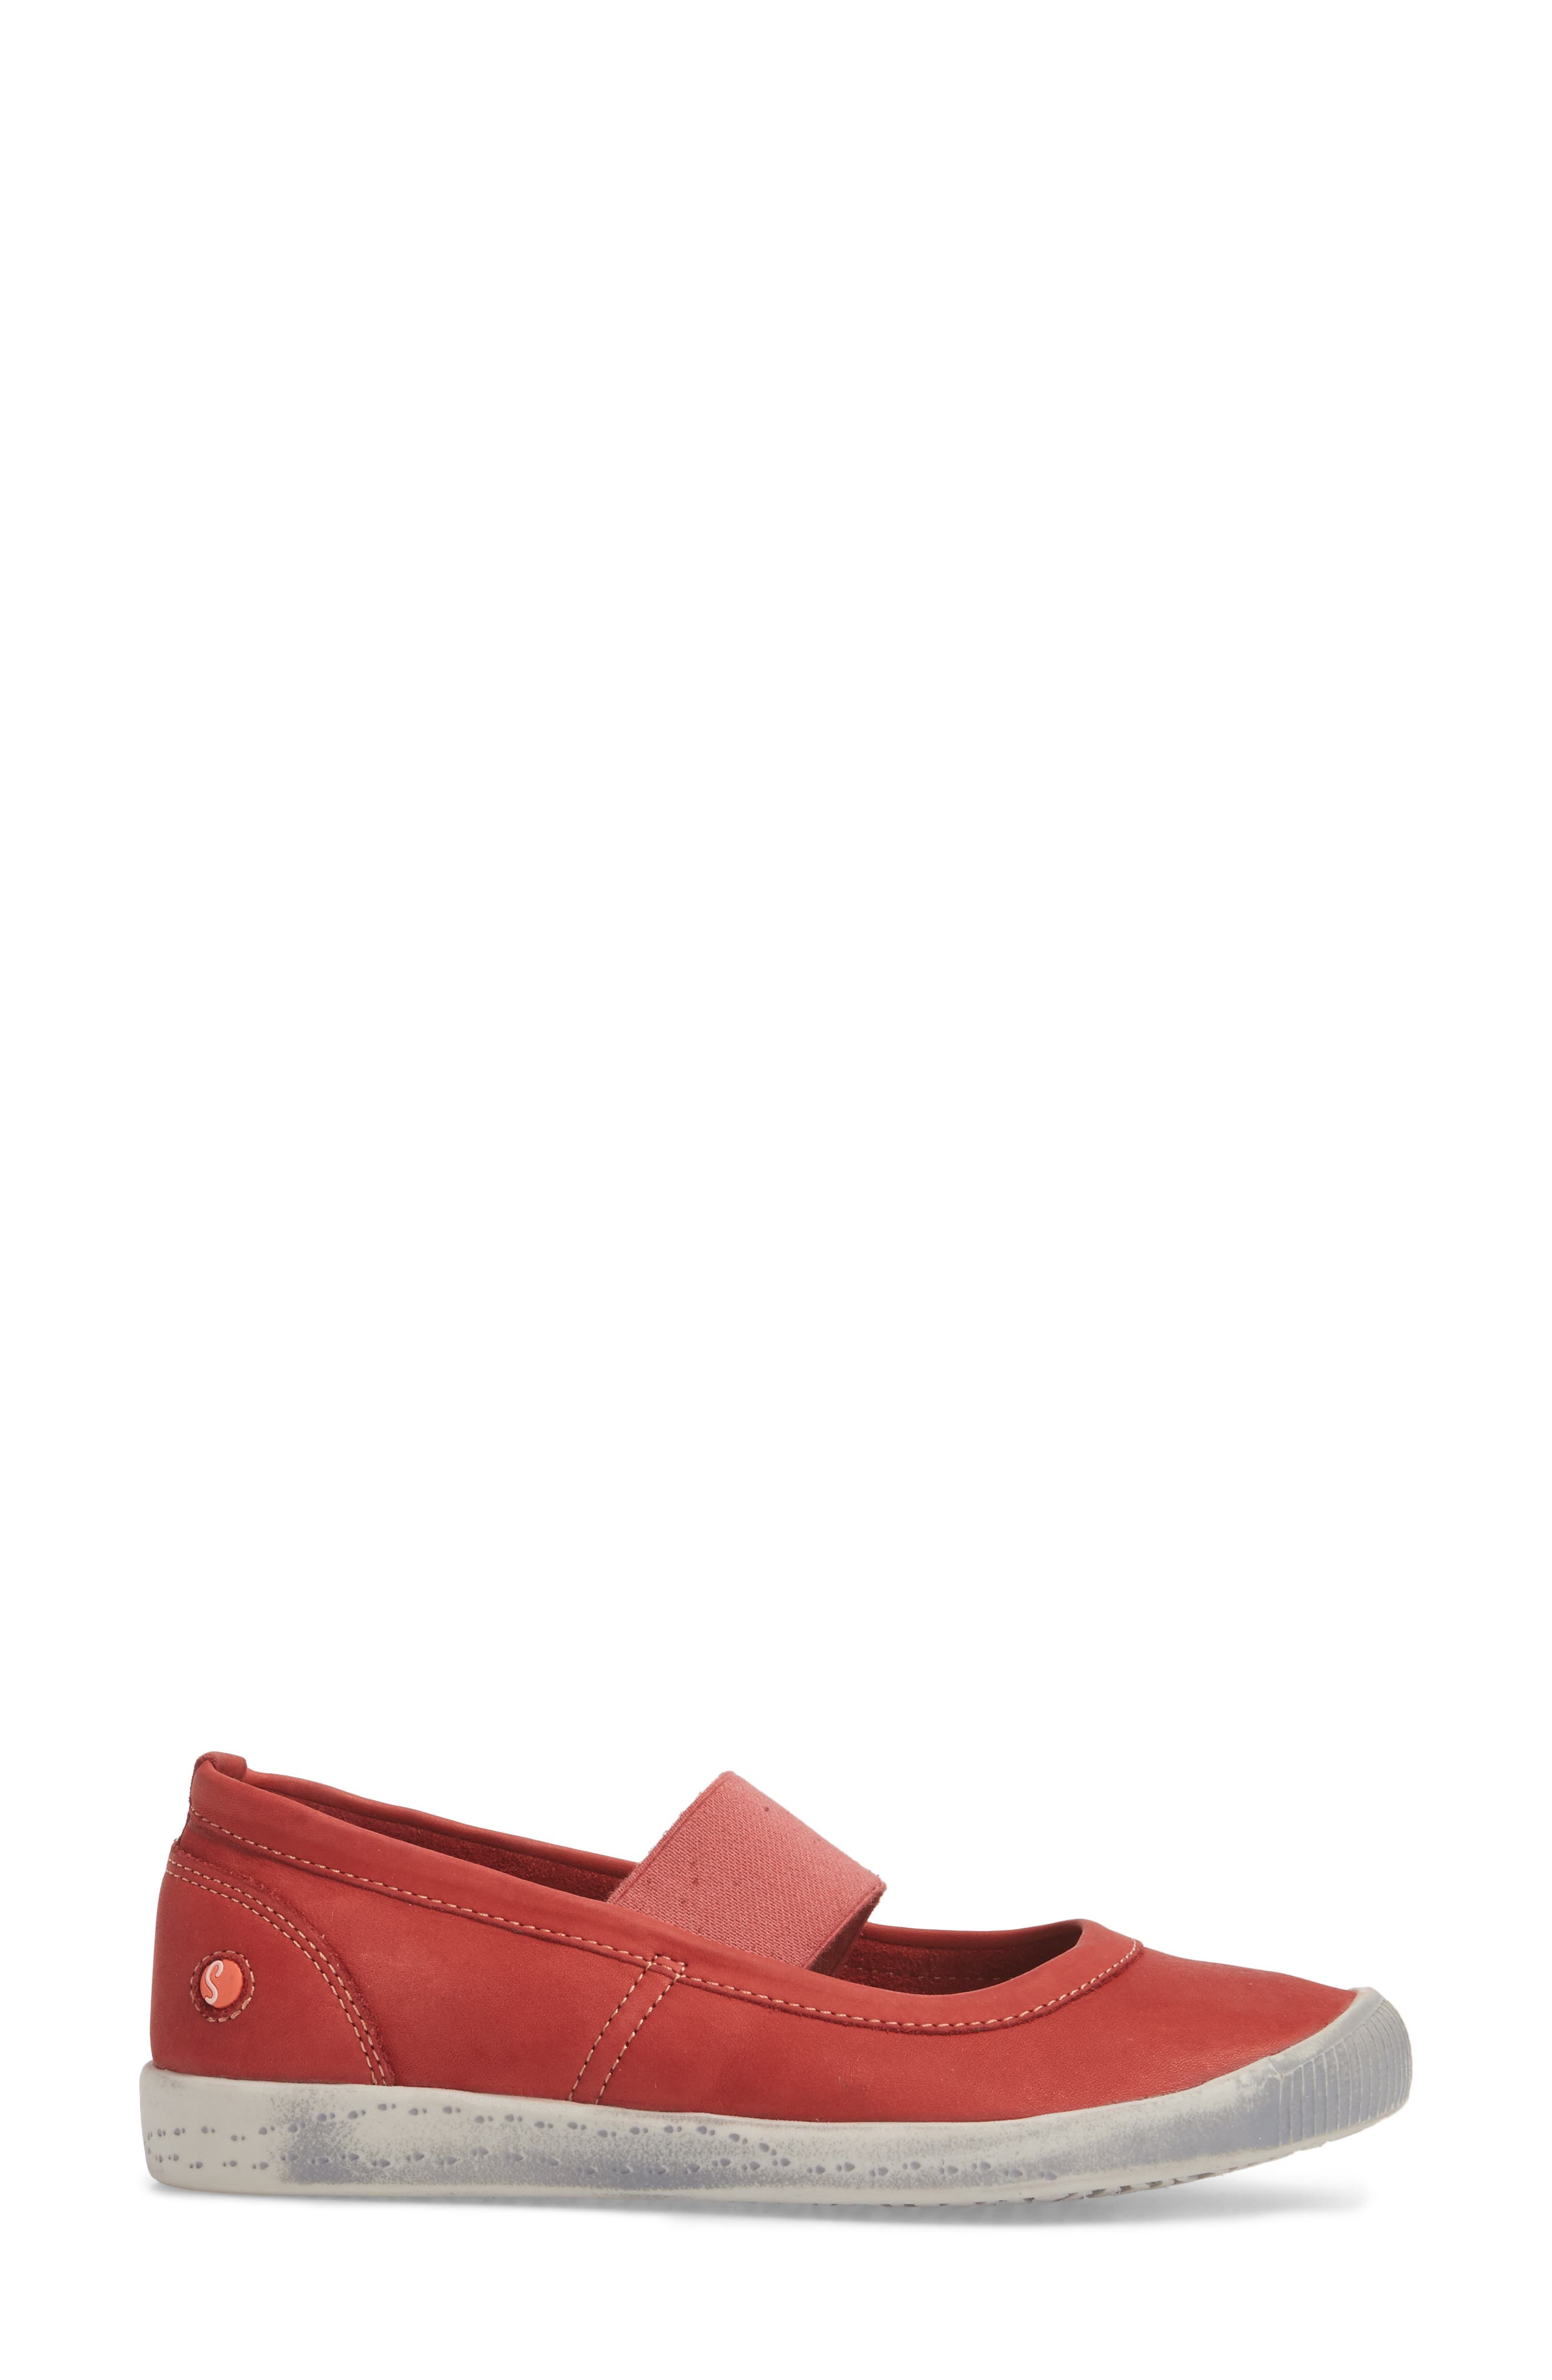 Ion Mary Jane Sneaker,                             Alternate thumbnail 3, color,                             Red Leather